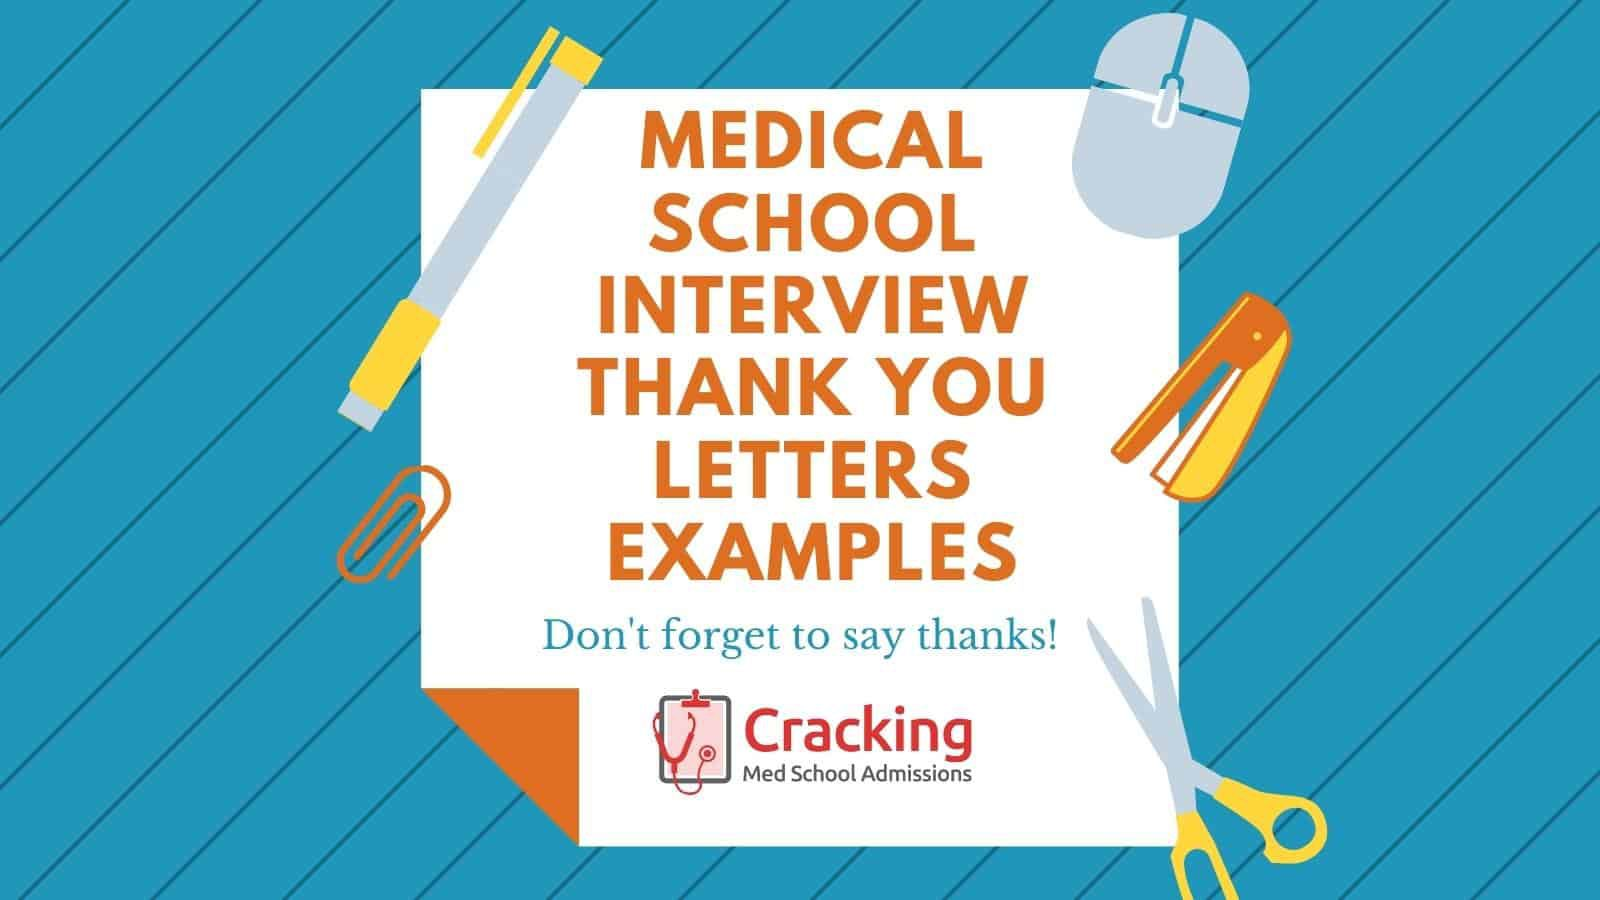 006 Simple Thank You Note Template Medical School Interview Inspiration  Letter SampleFull